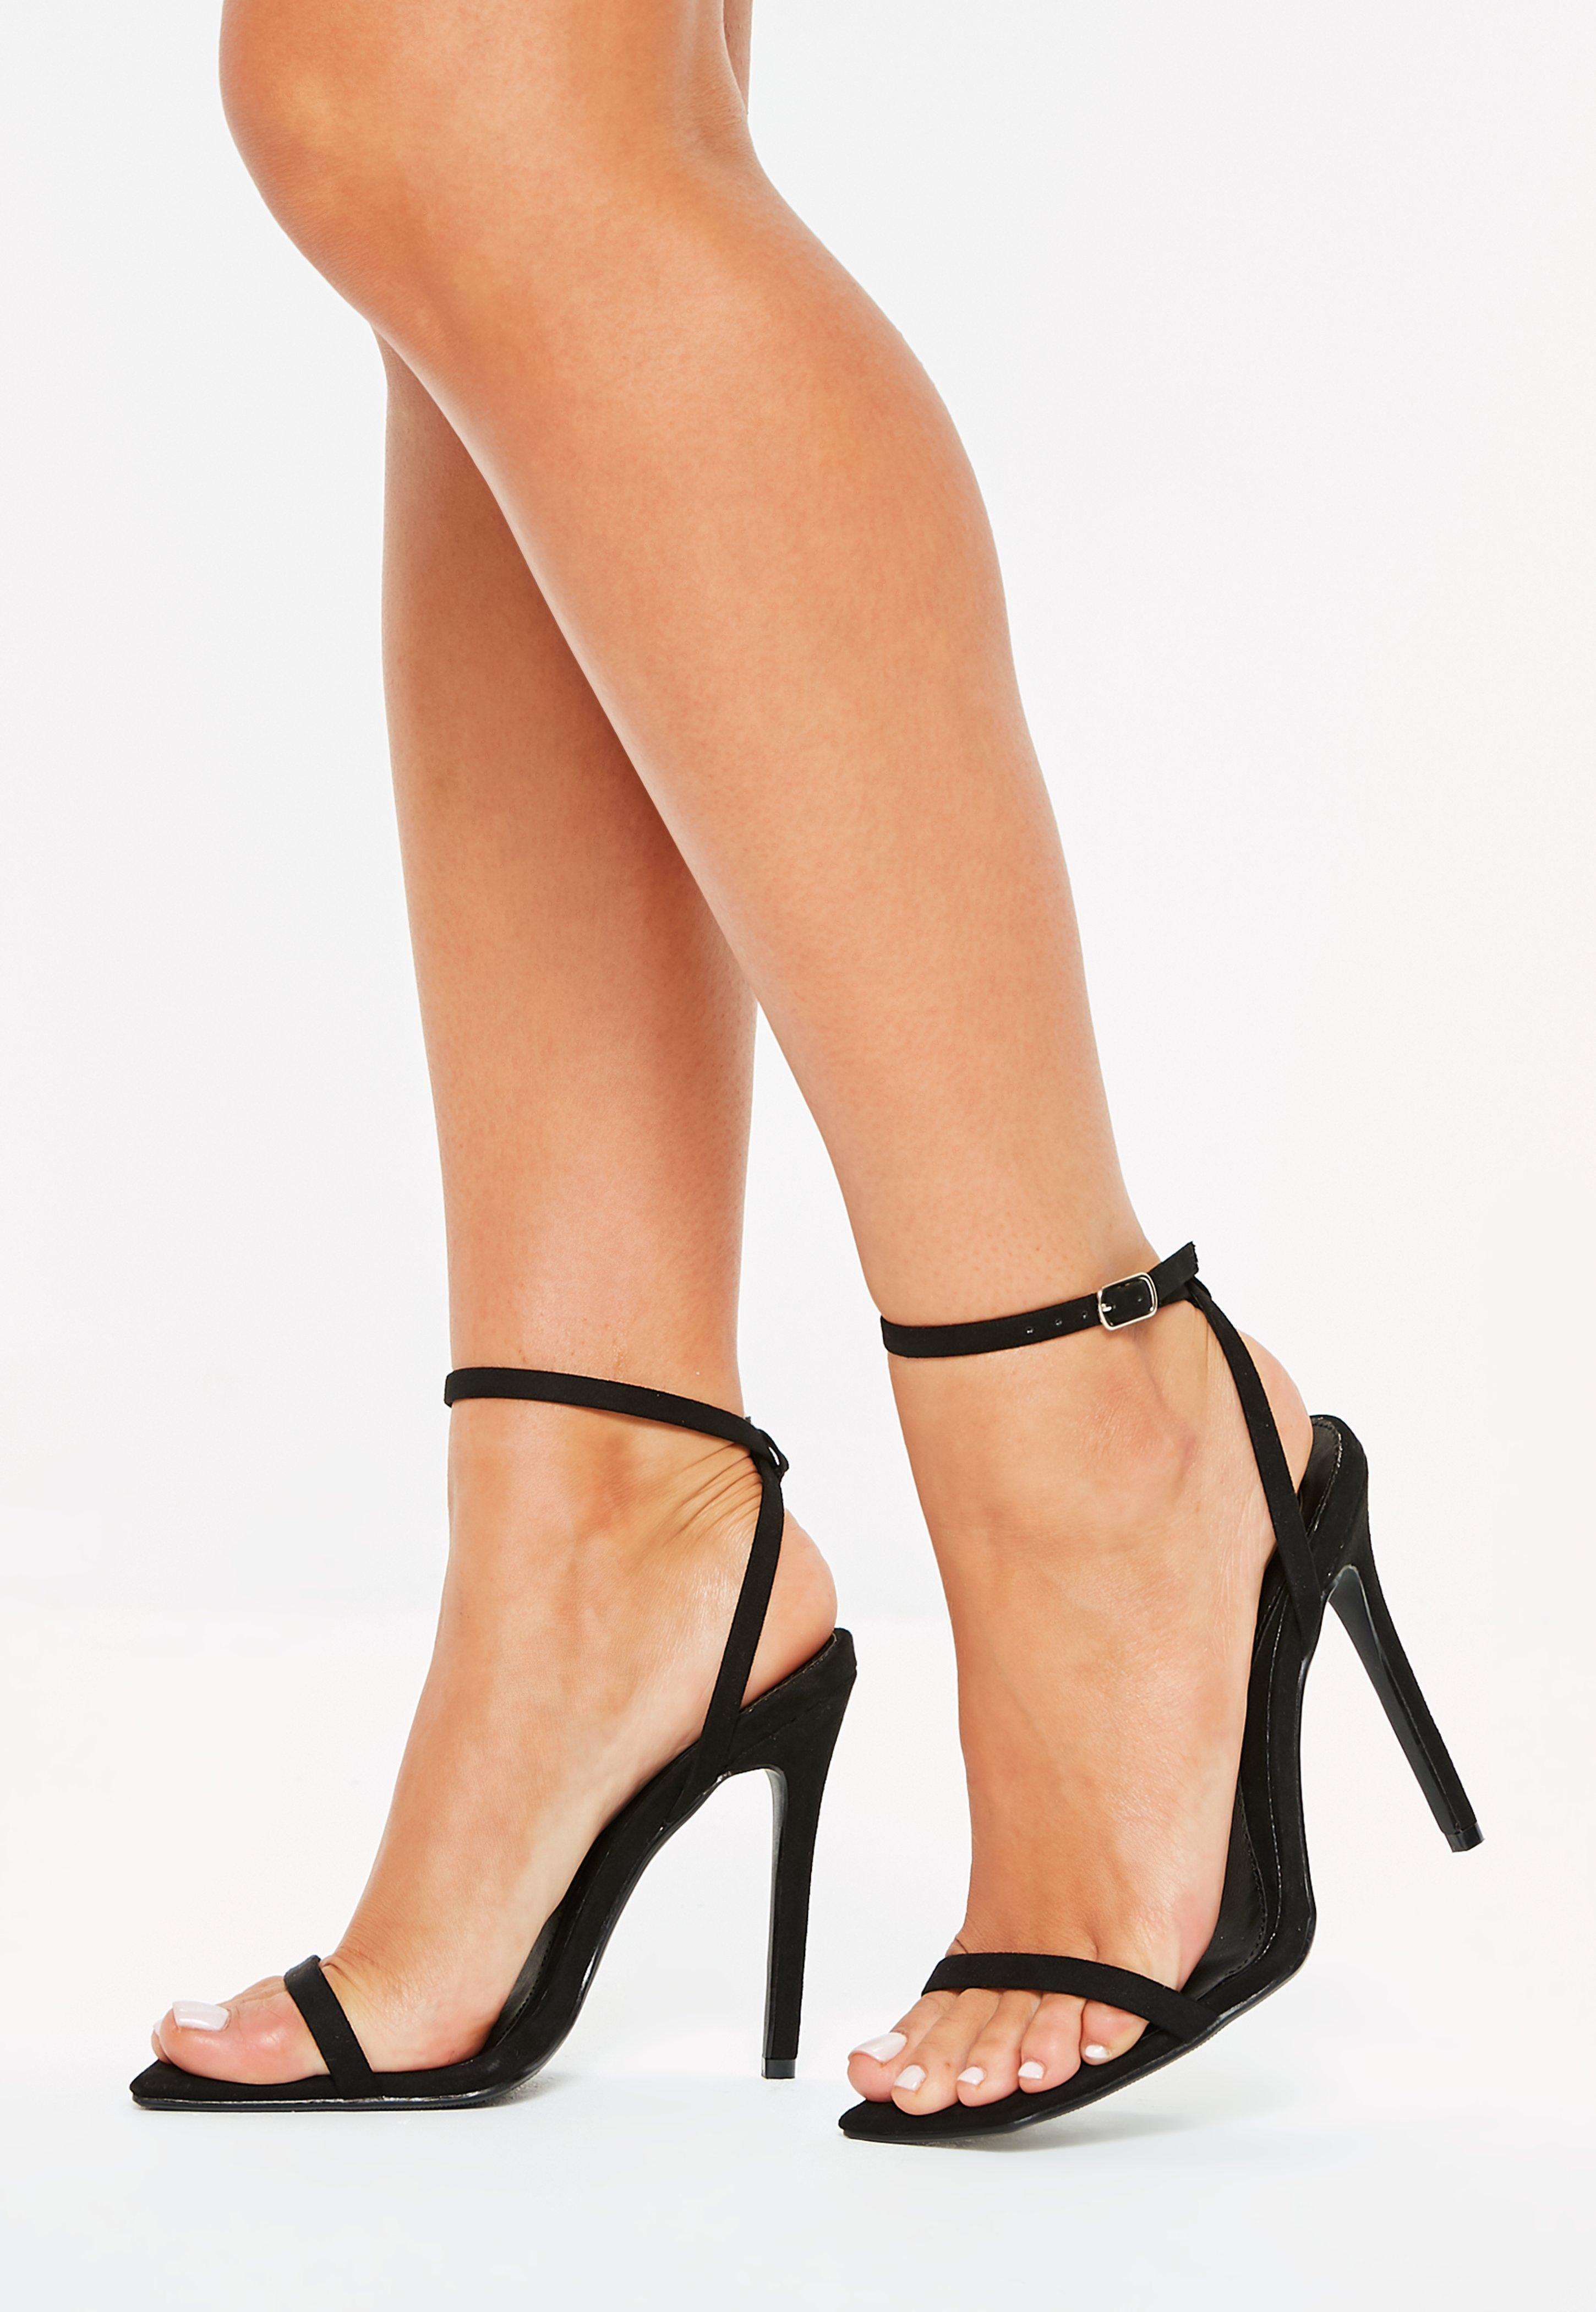 bd5f55bcc6d9 Lyst - Missguided Black Slanted Toe Barely There Heels in Black